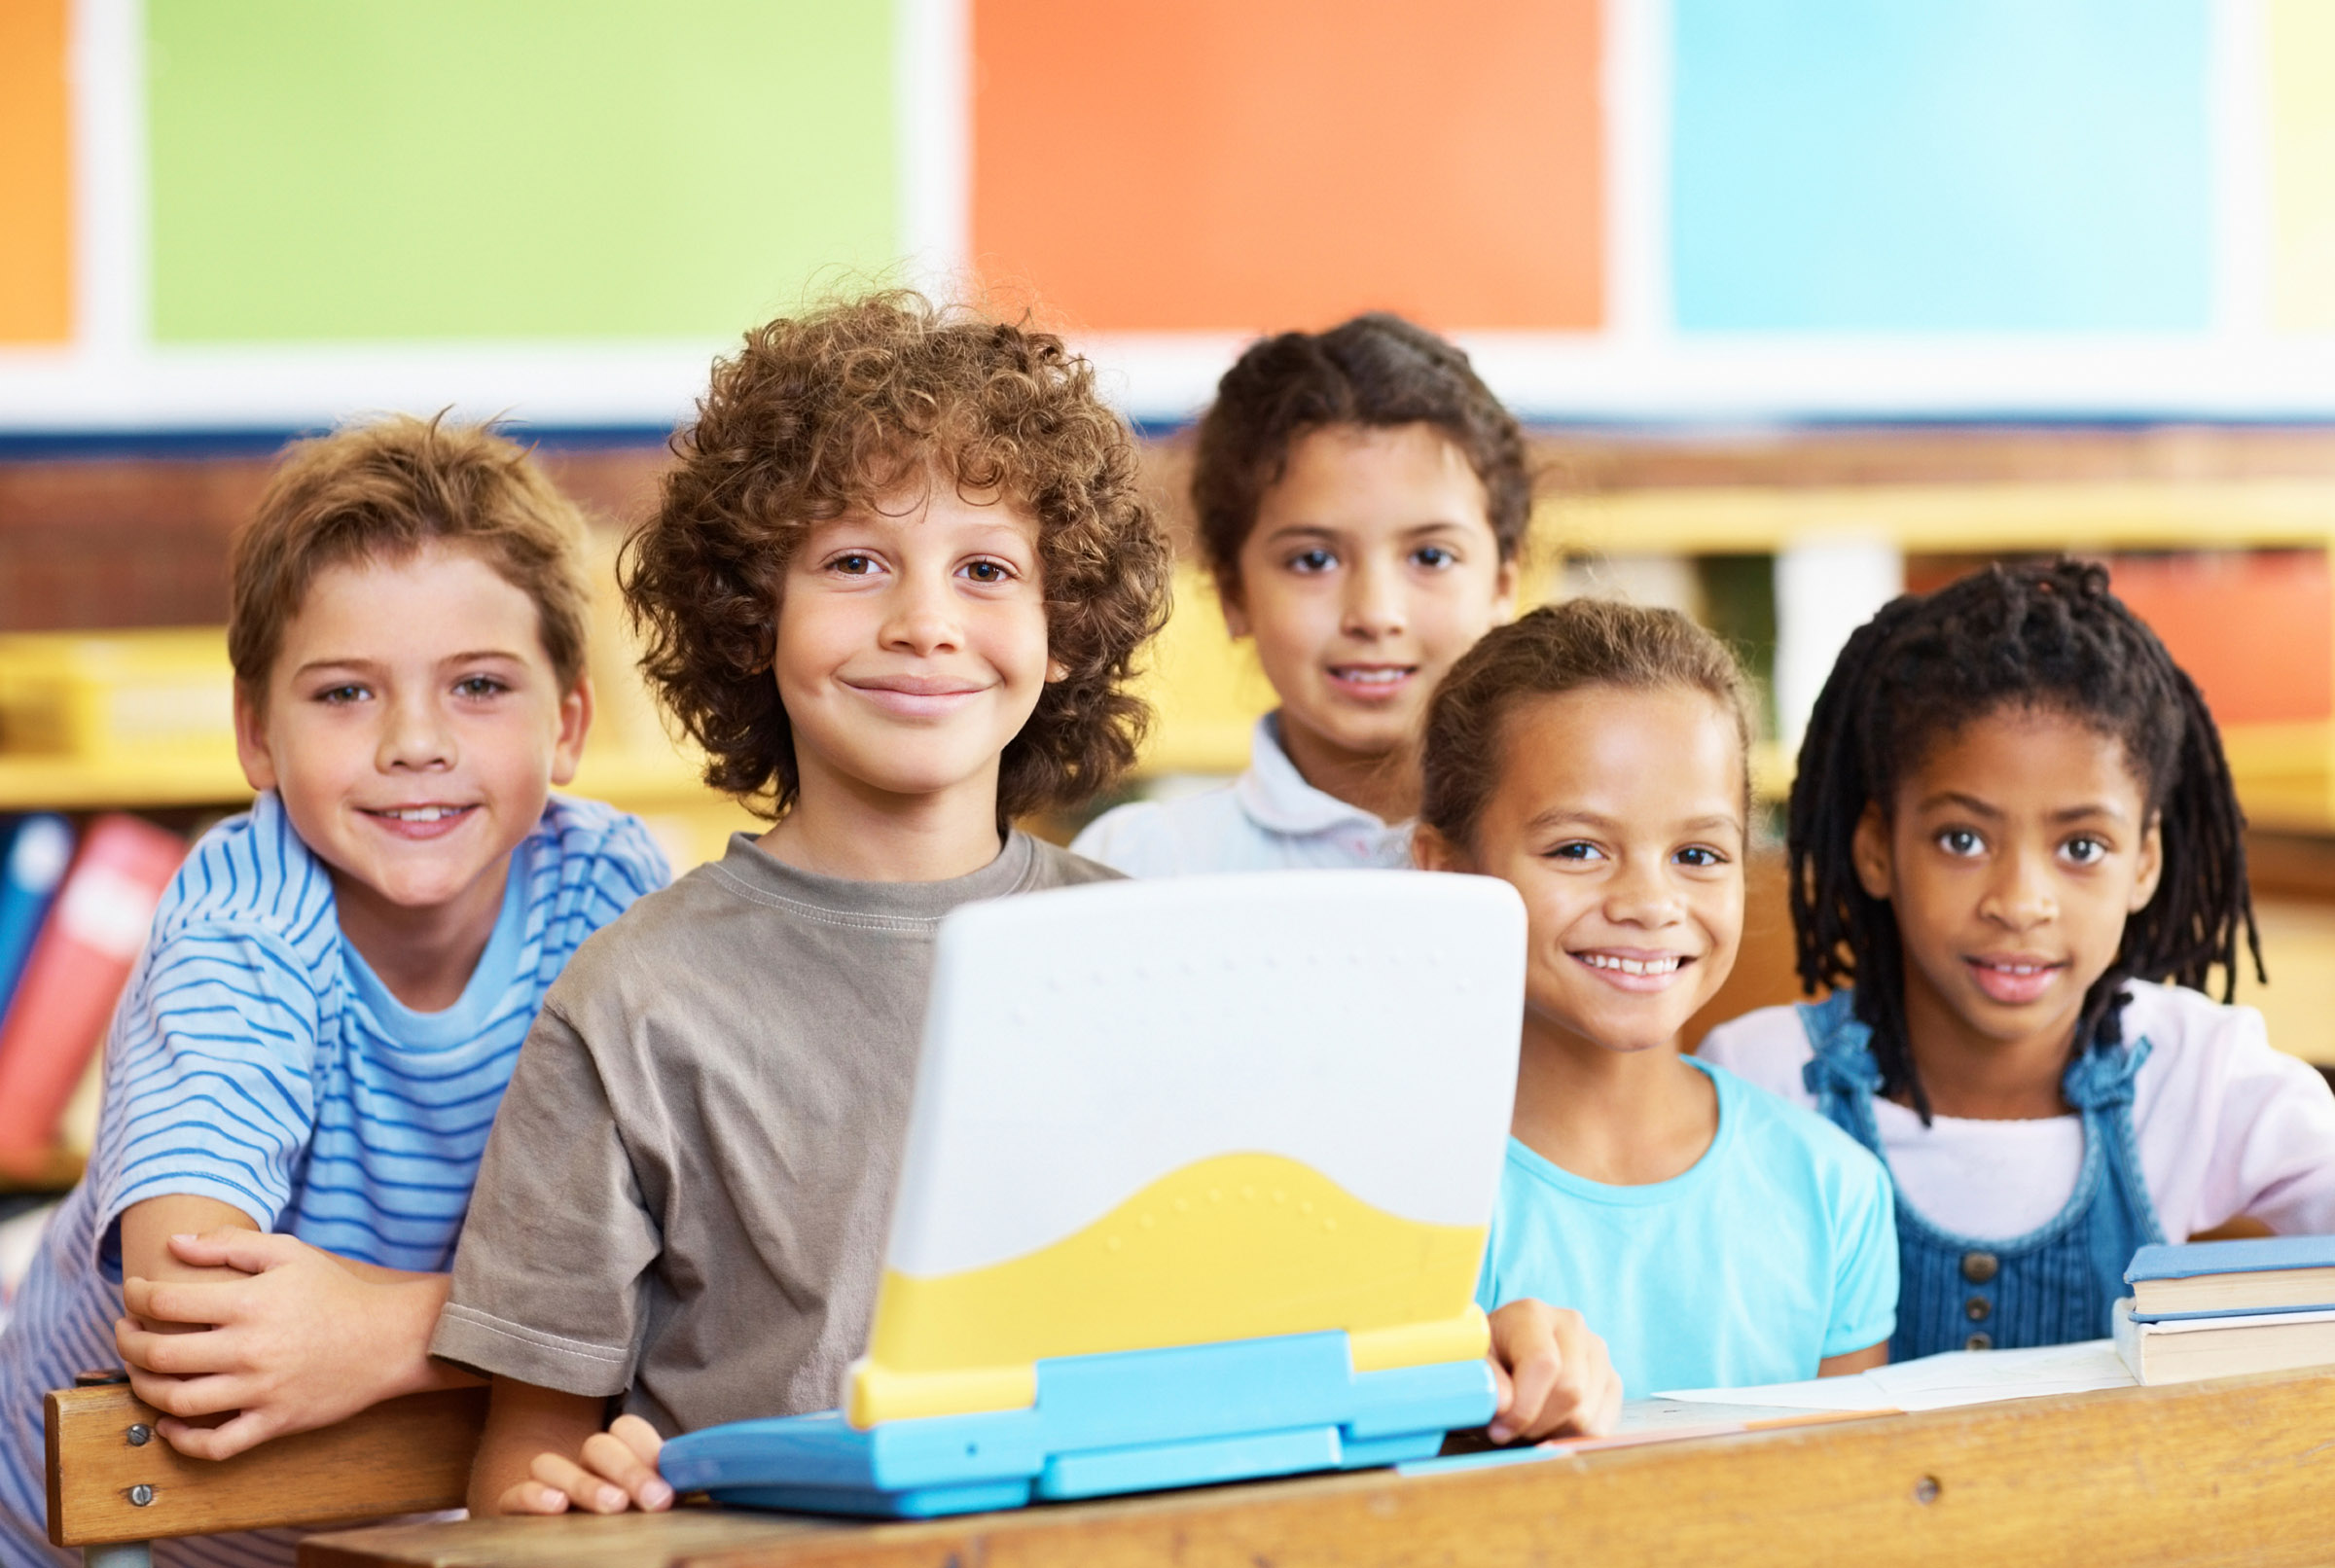 success story - group of five students around 10 years of age, smiling, around a school computer, boys and girls